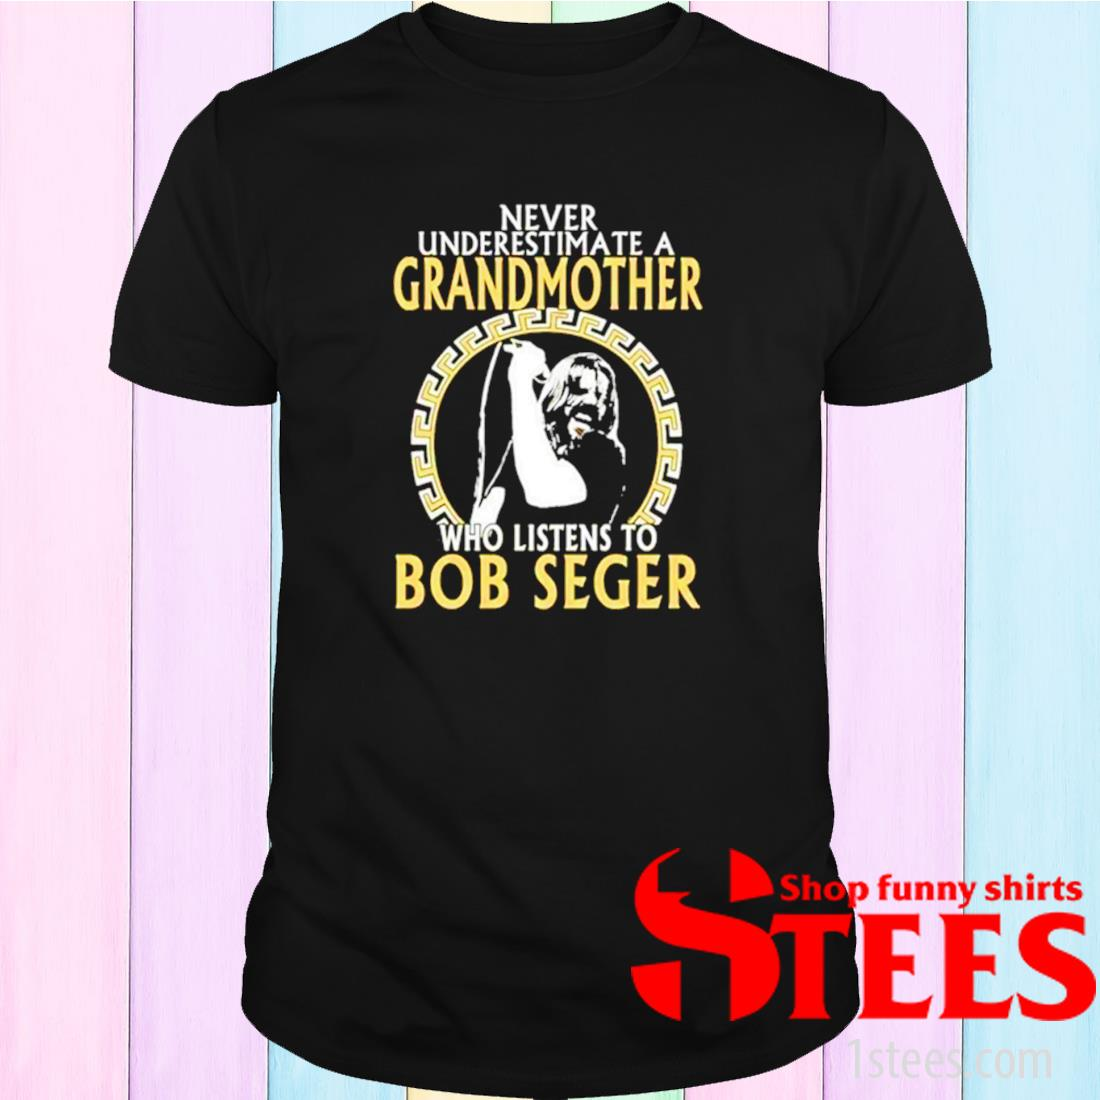 Never Underestimate A Grandmother Who Listens To Bob Seger Shirt